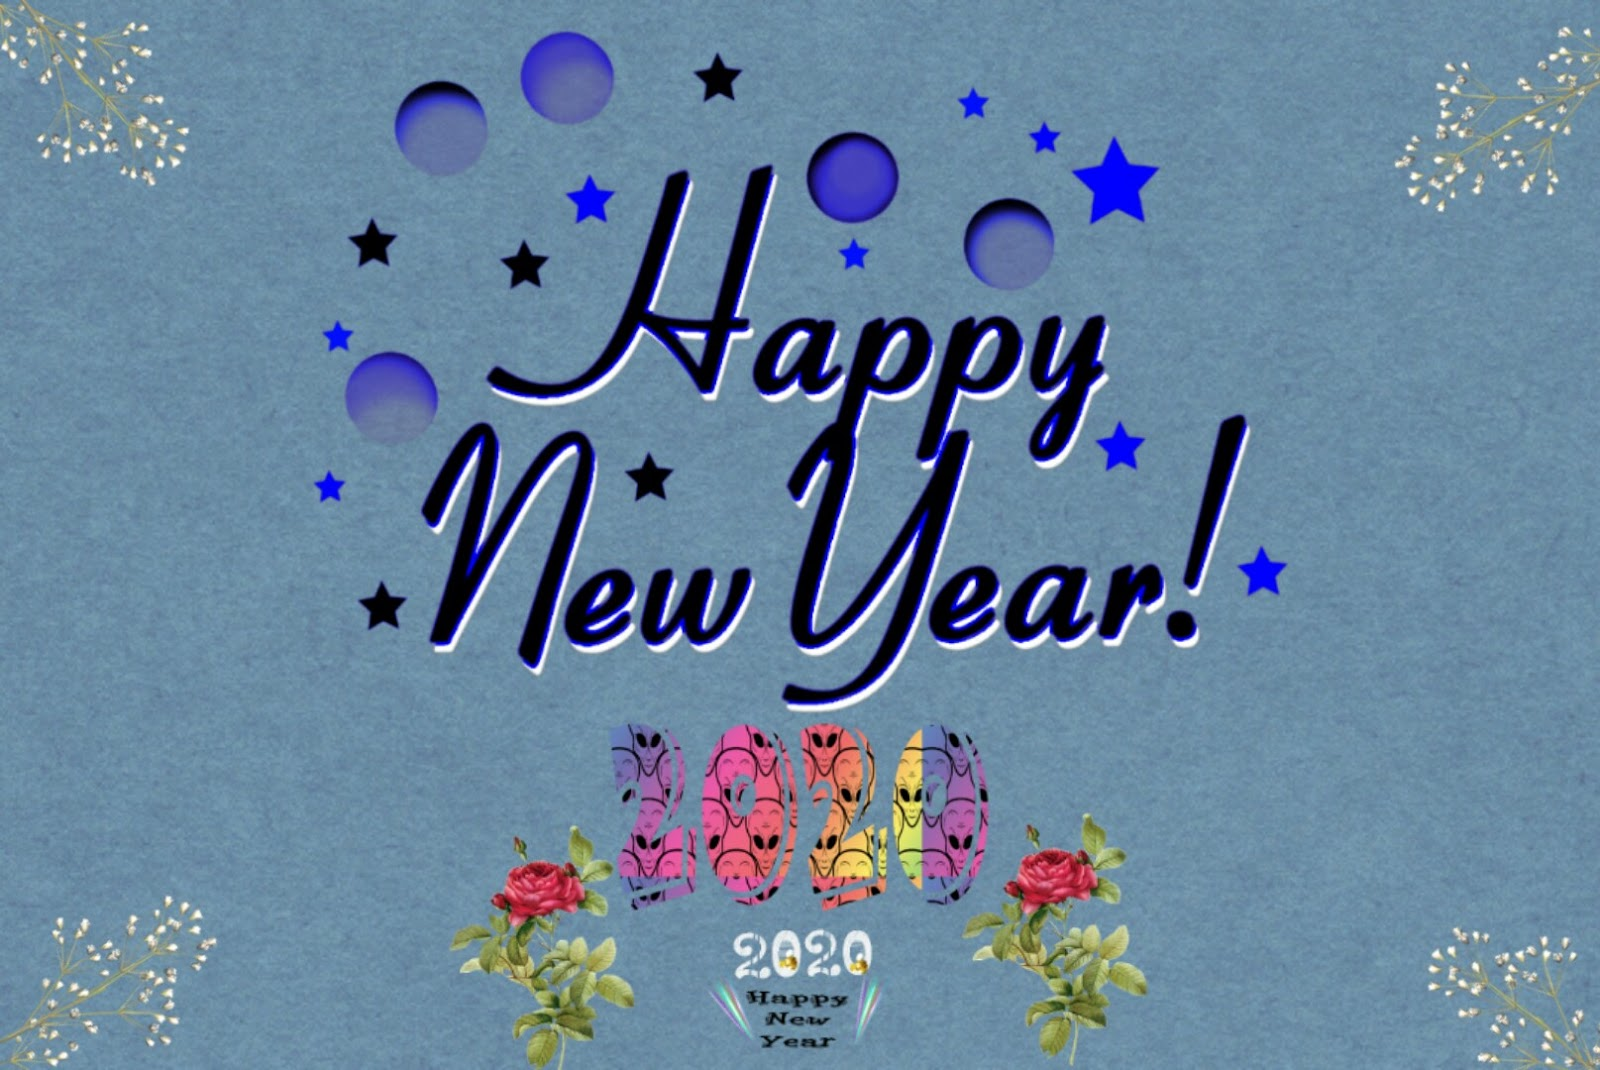 Happy New Year 2020 Beautiful Wishing Images Free To Download Hd Quality Top10 Birthday Special Photos Happy Birthday